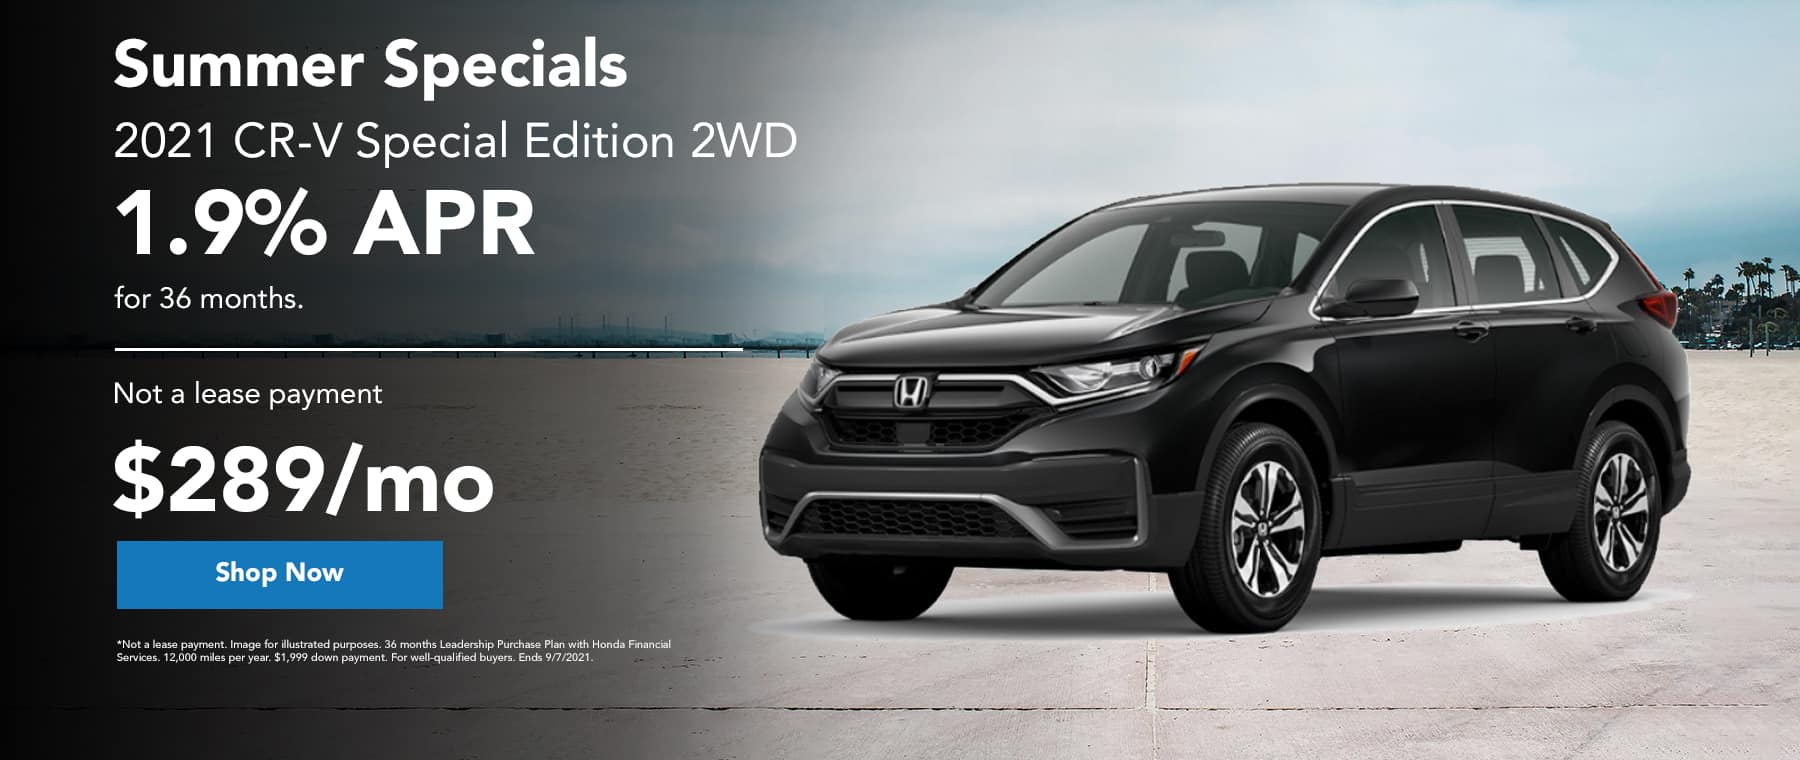 Introducing the all new 2022 Honda Civic Sport Sedan 1.9% APR or $259 a month. Not a lease payment